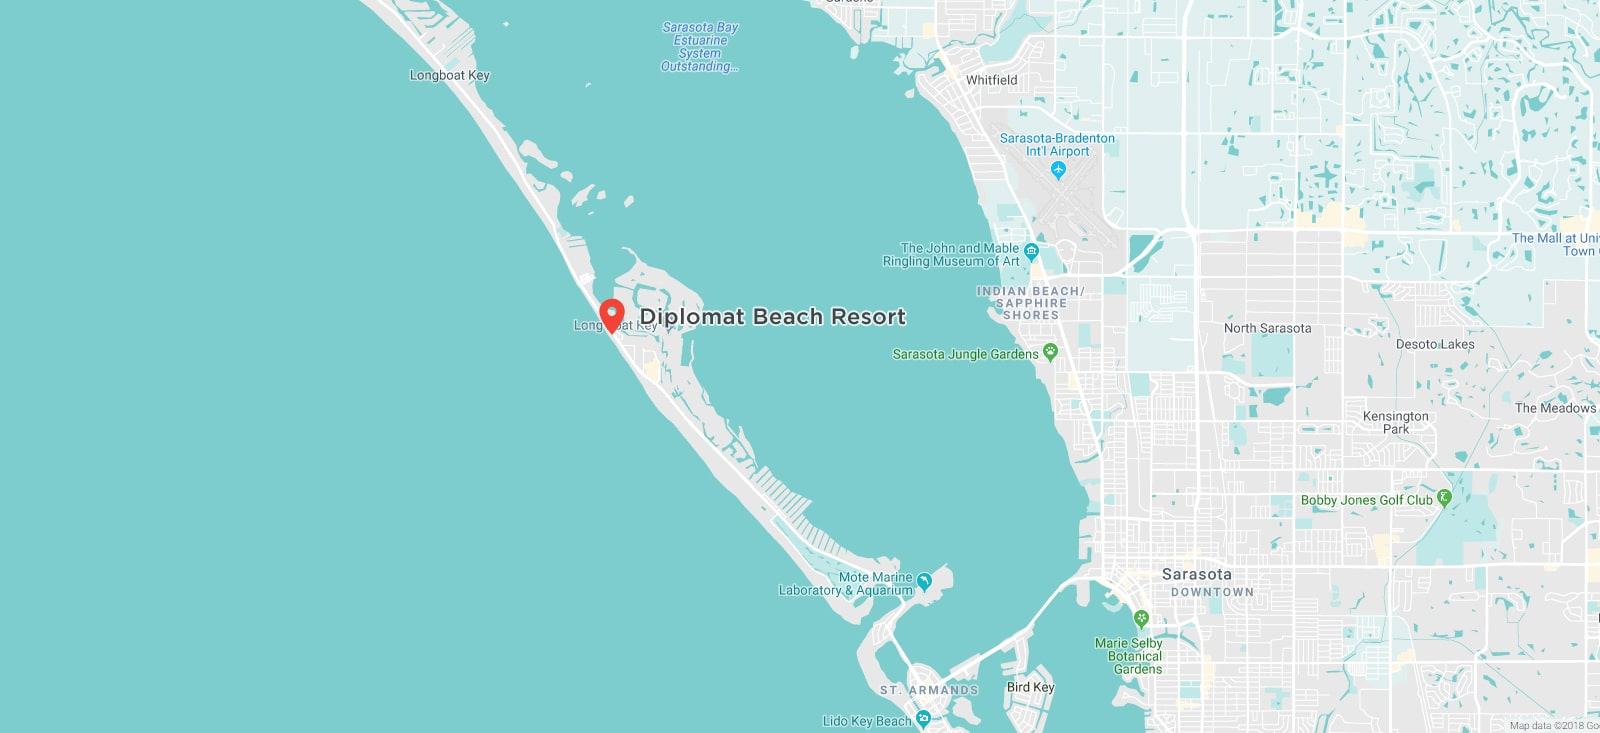 Diplomat Resort Longboat Key Florida | Vacation Condo Resort - Longboat Key Florida Map